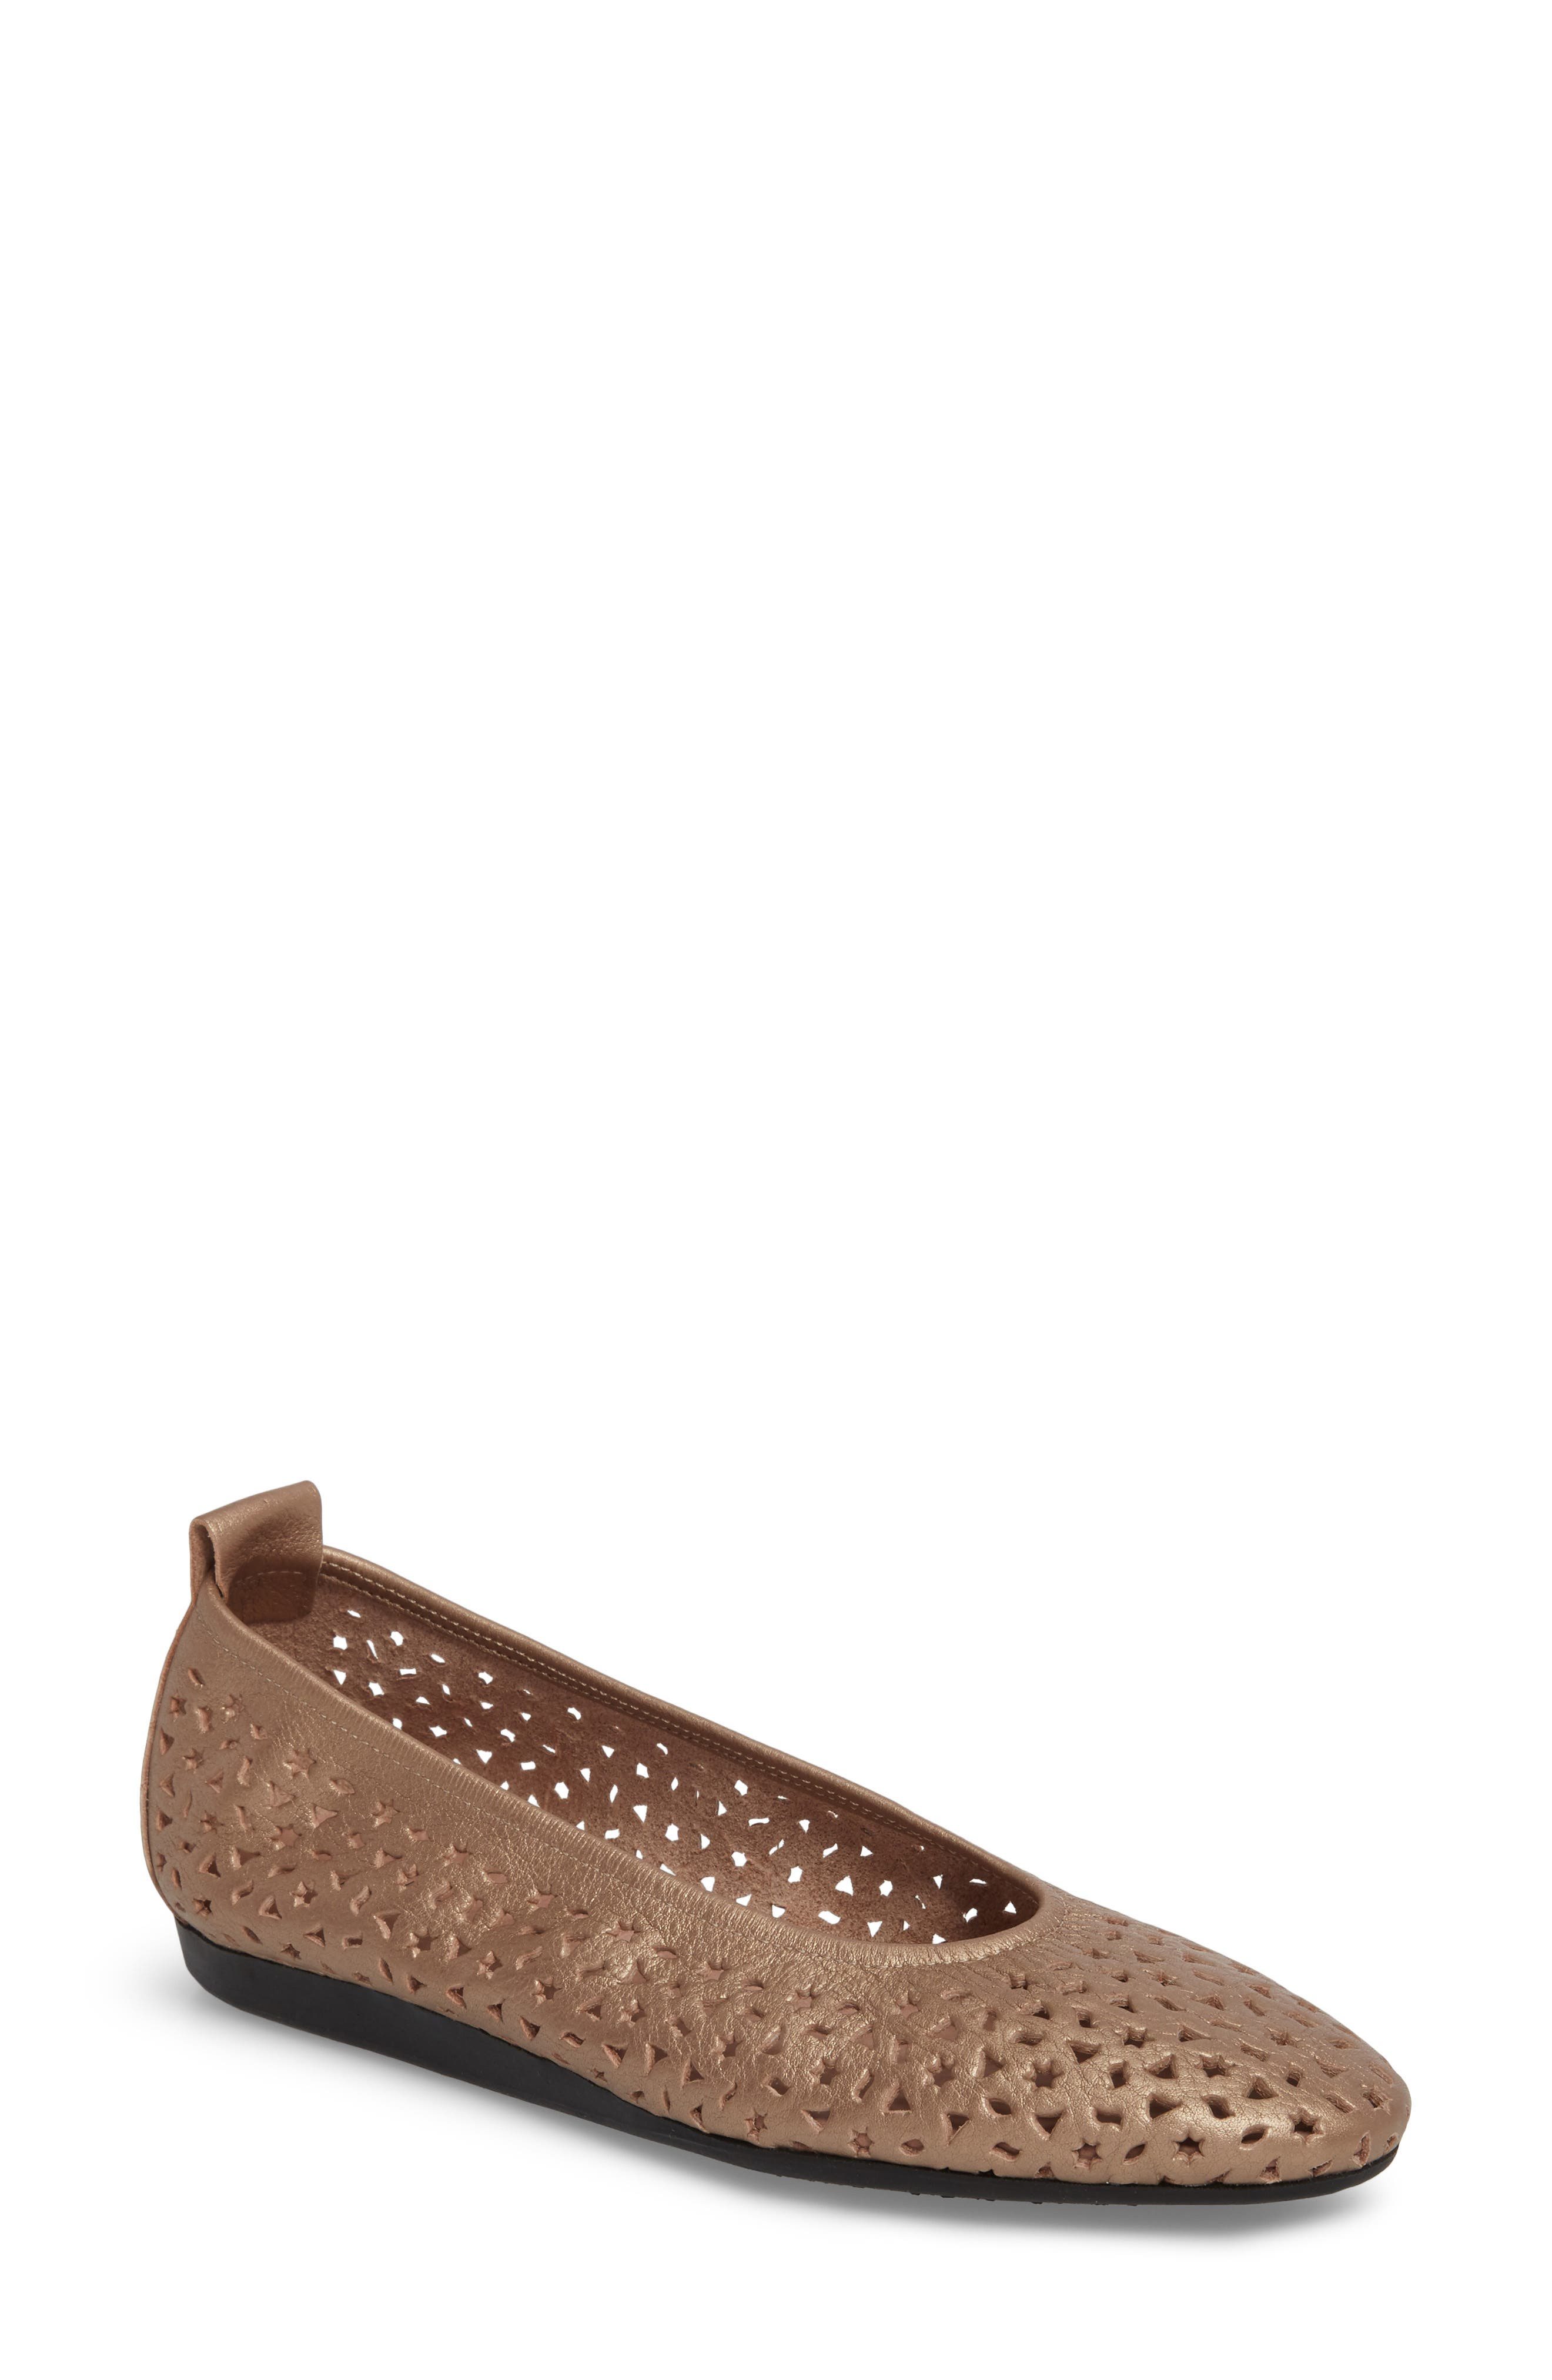 'Lilly' Flat,                         Main,                         color, ANTICO/ BLUSH LEATHER